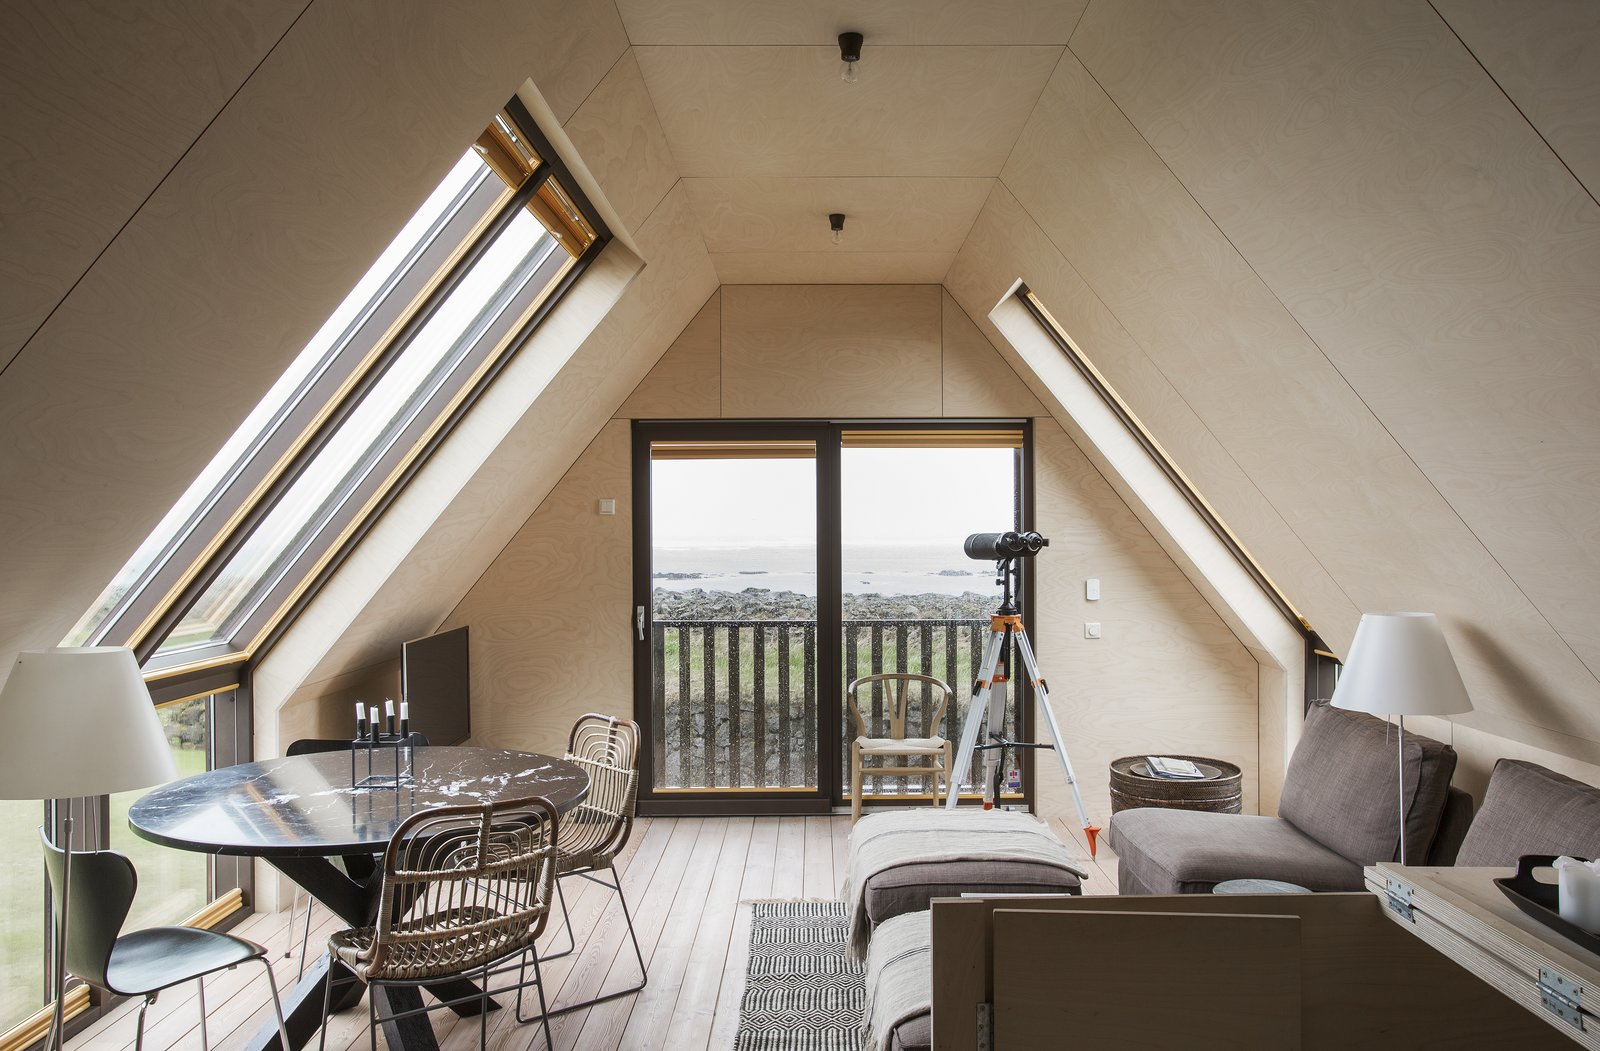 10 Incredible Rentals For Your Dream Trip to Iceland - Photo 11 of 29 -